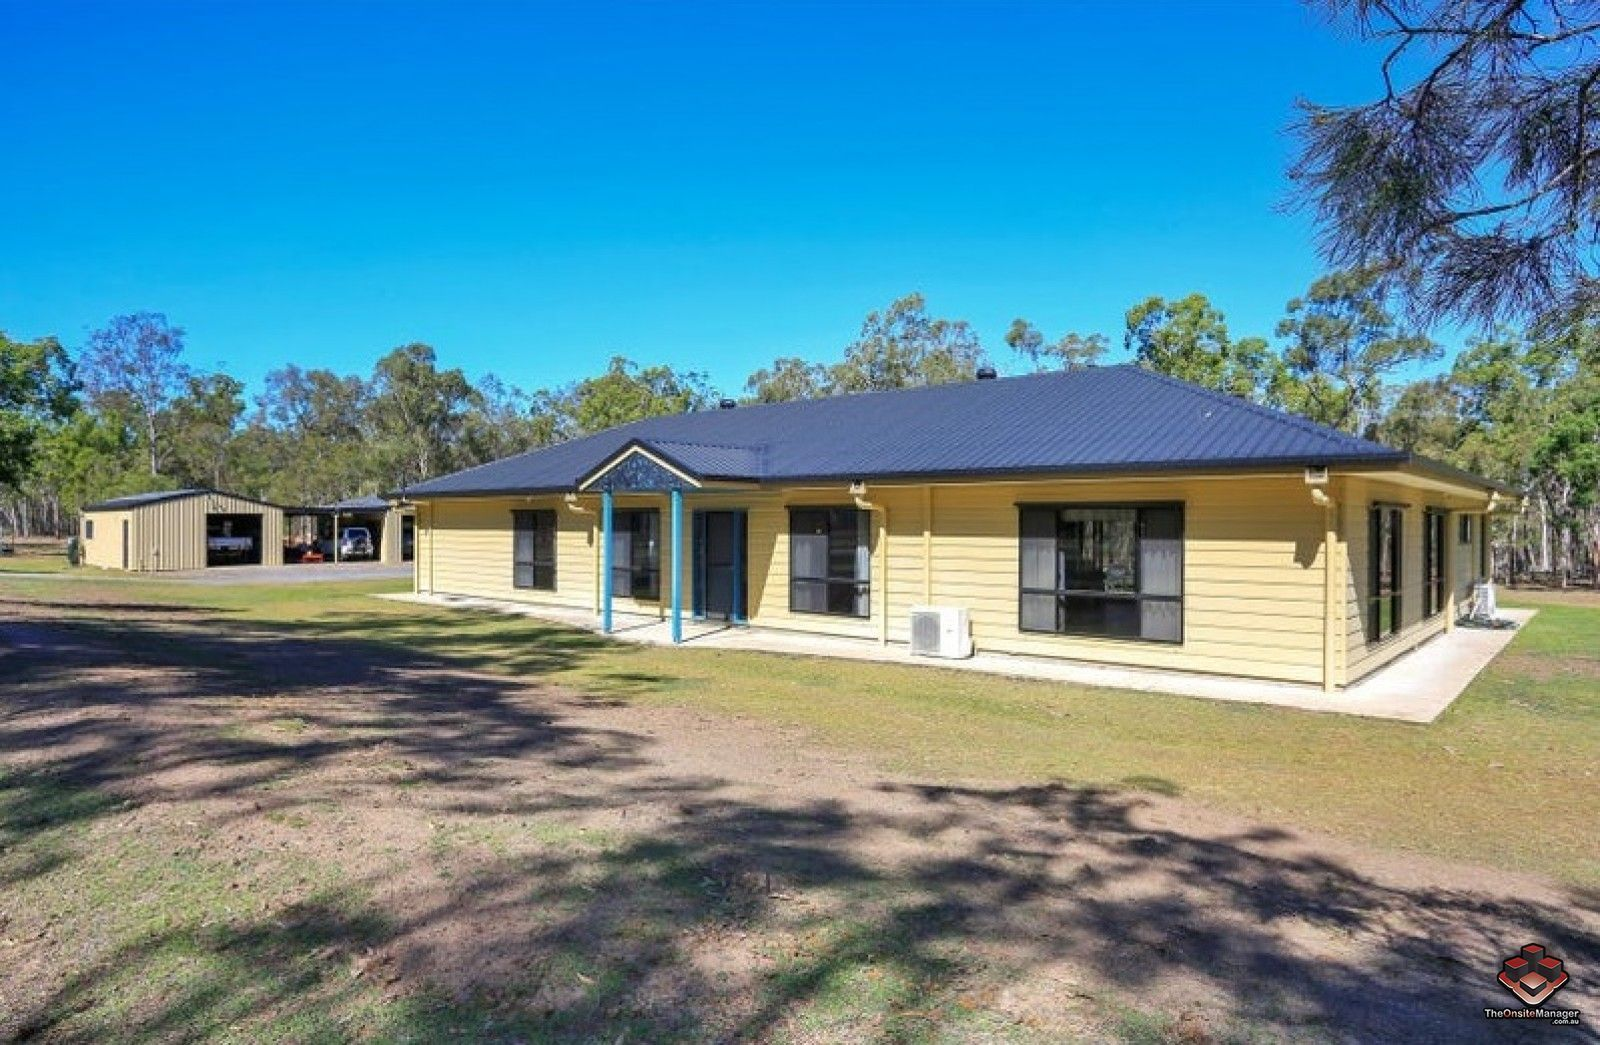 Howard QLD 20   20 beds house for Rent, $2090   120401802 ...